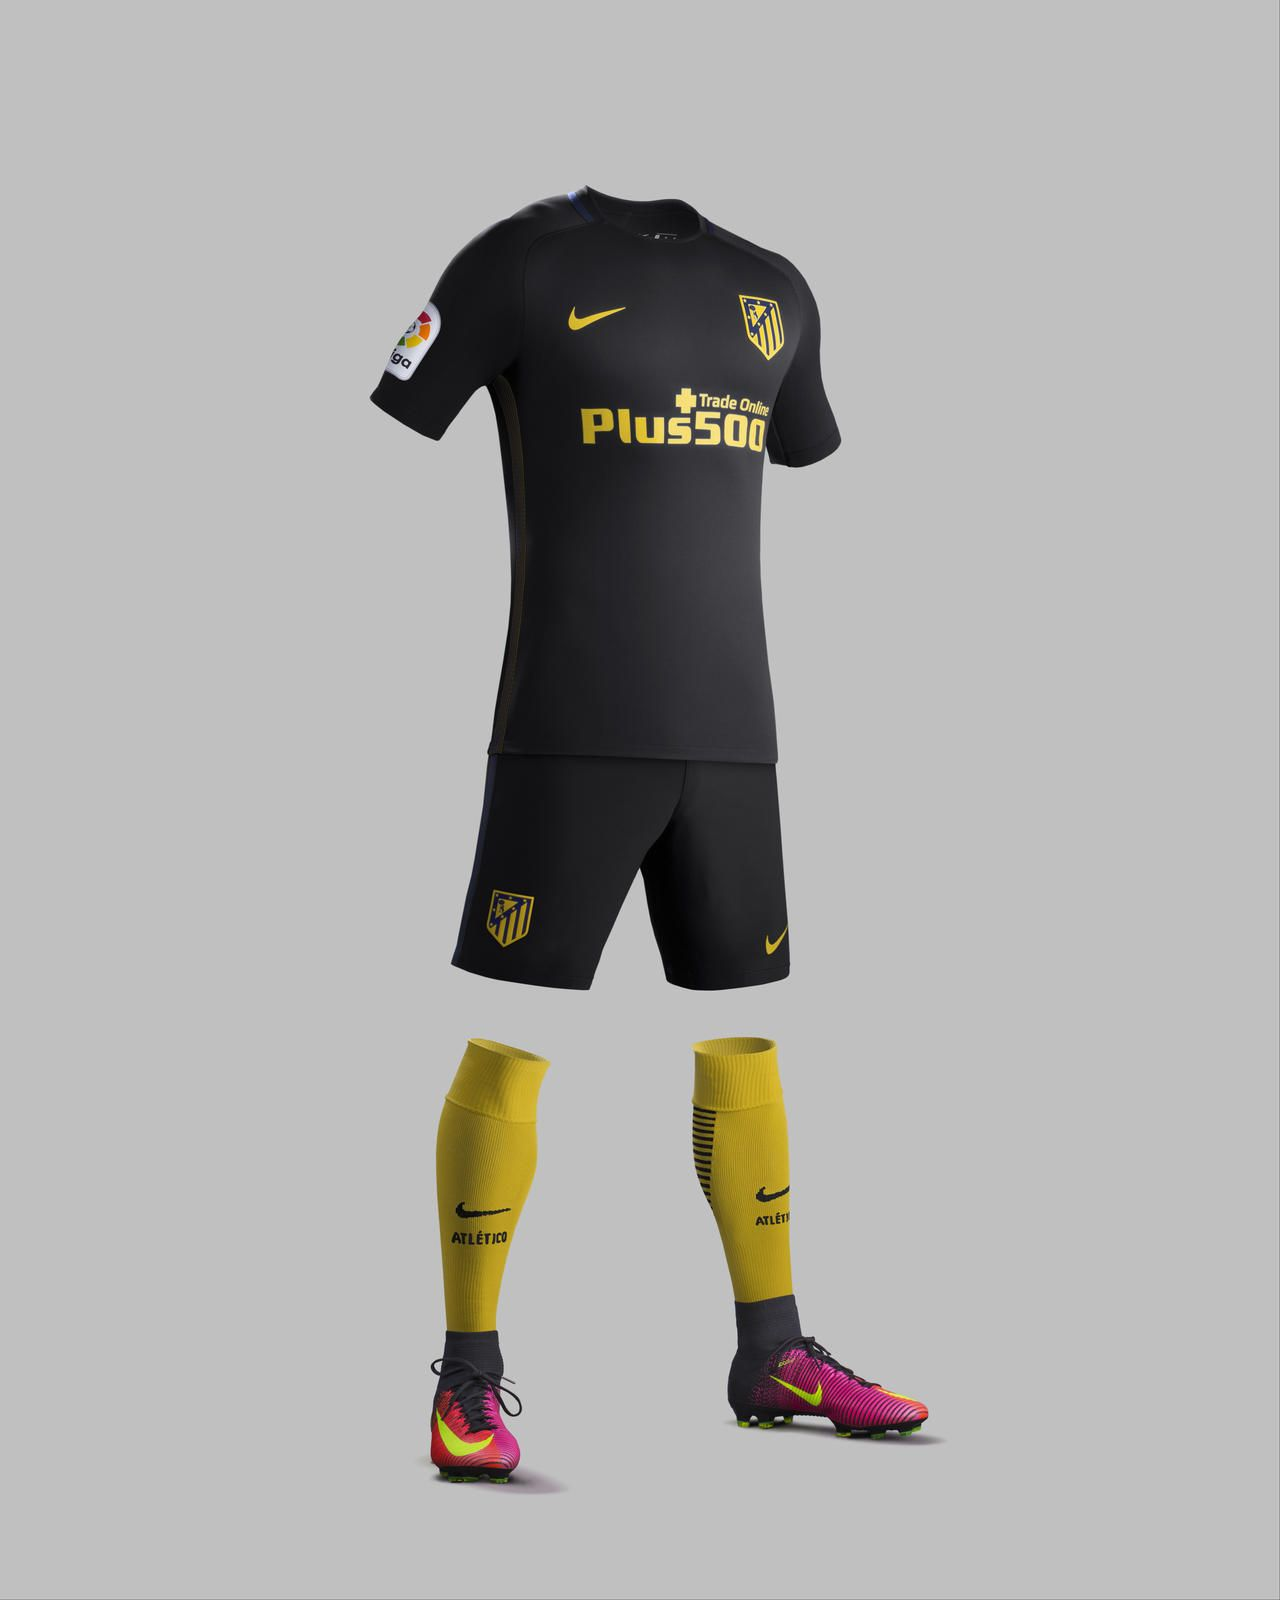 Camisas do Atlético de Madrid 2016-2017 Nike Reserva kit 0e44e579557bd